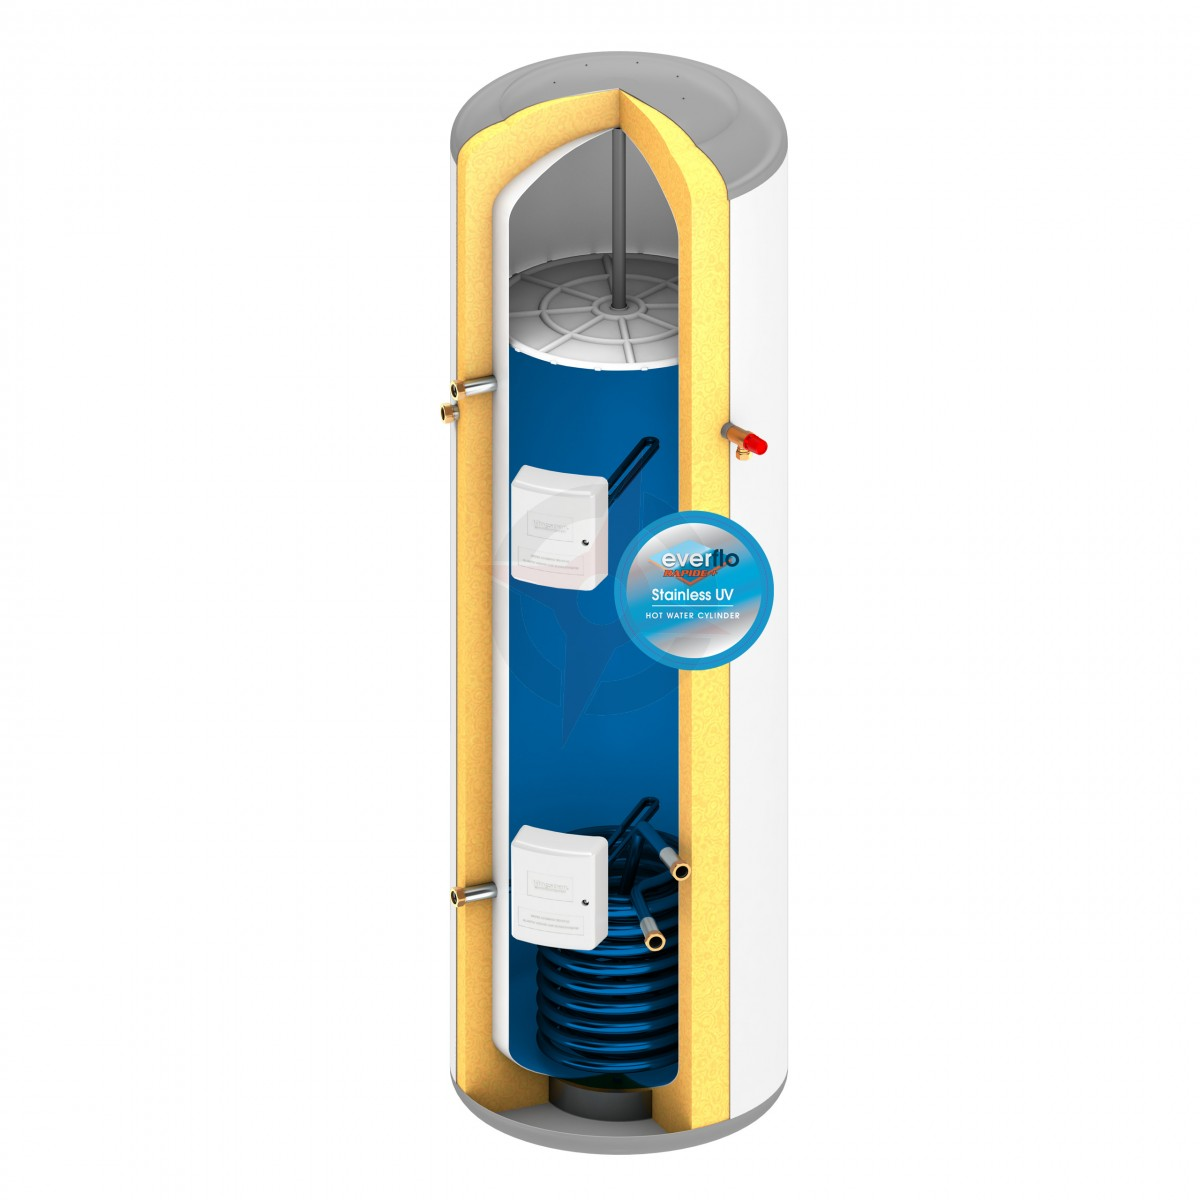 everflo Rapide+ 300L Indirect Unvented Hot Water Storage Cylinder ...